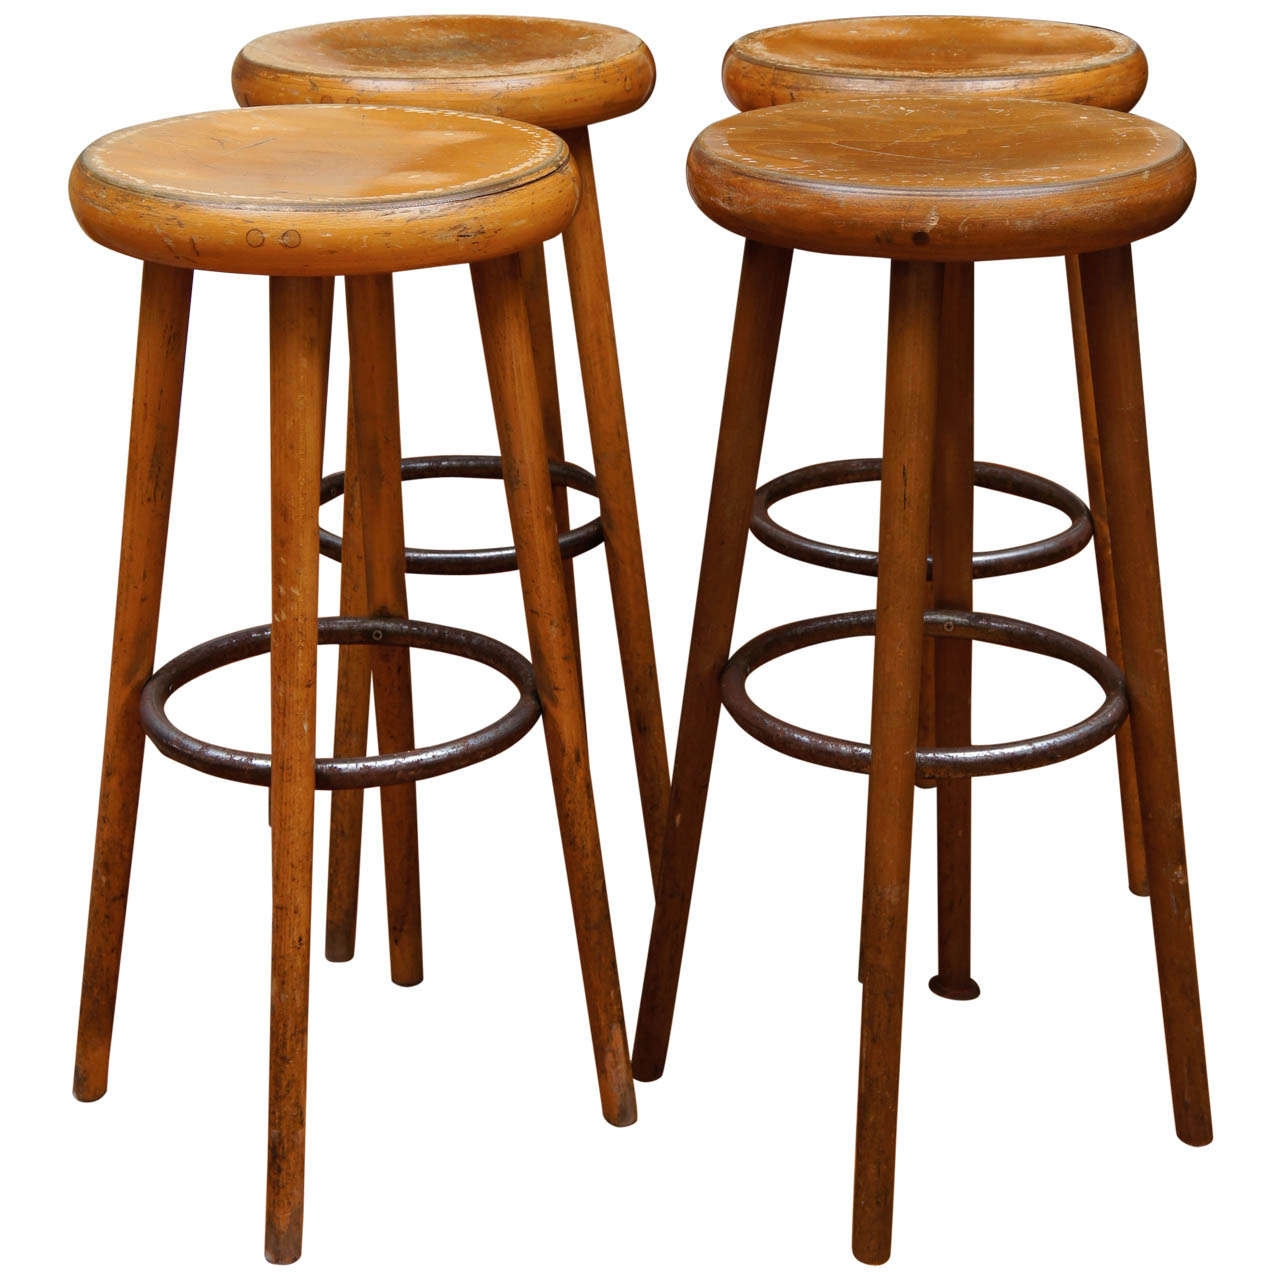 French Industrial Bar Stools 1